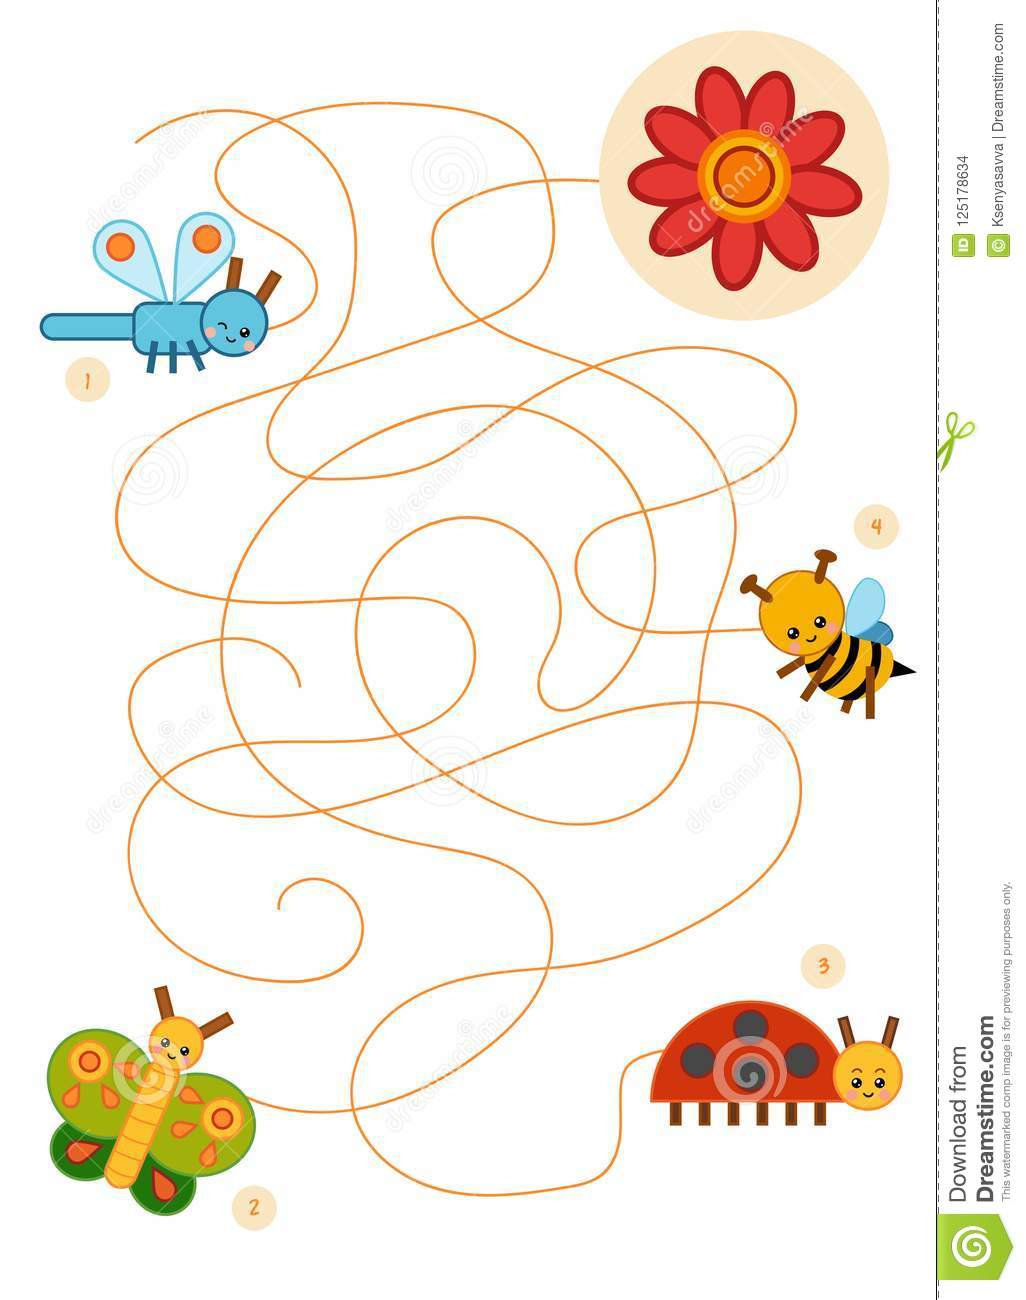 Maze Game For Children Butterfly Ladybug Dragonfly Bee